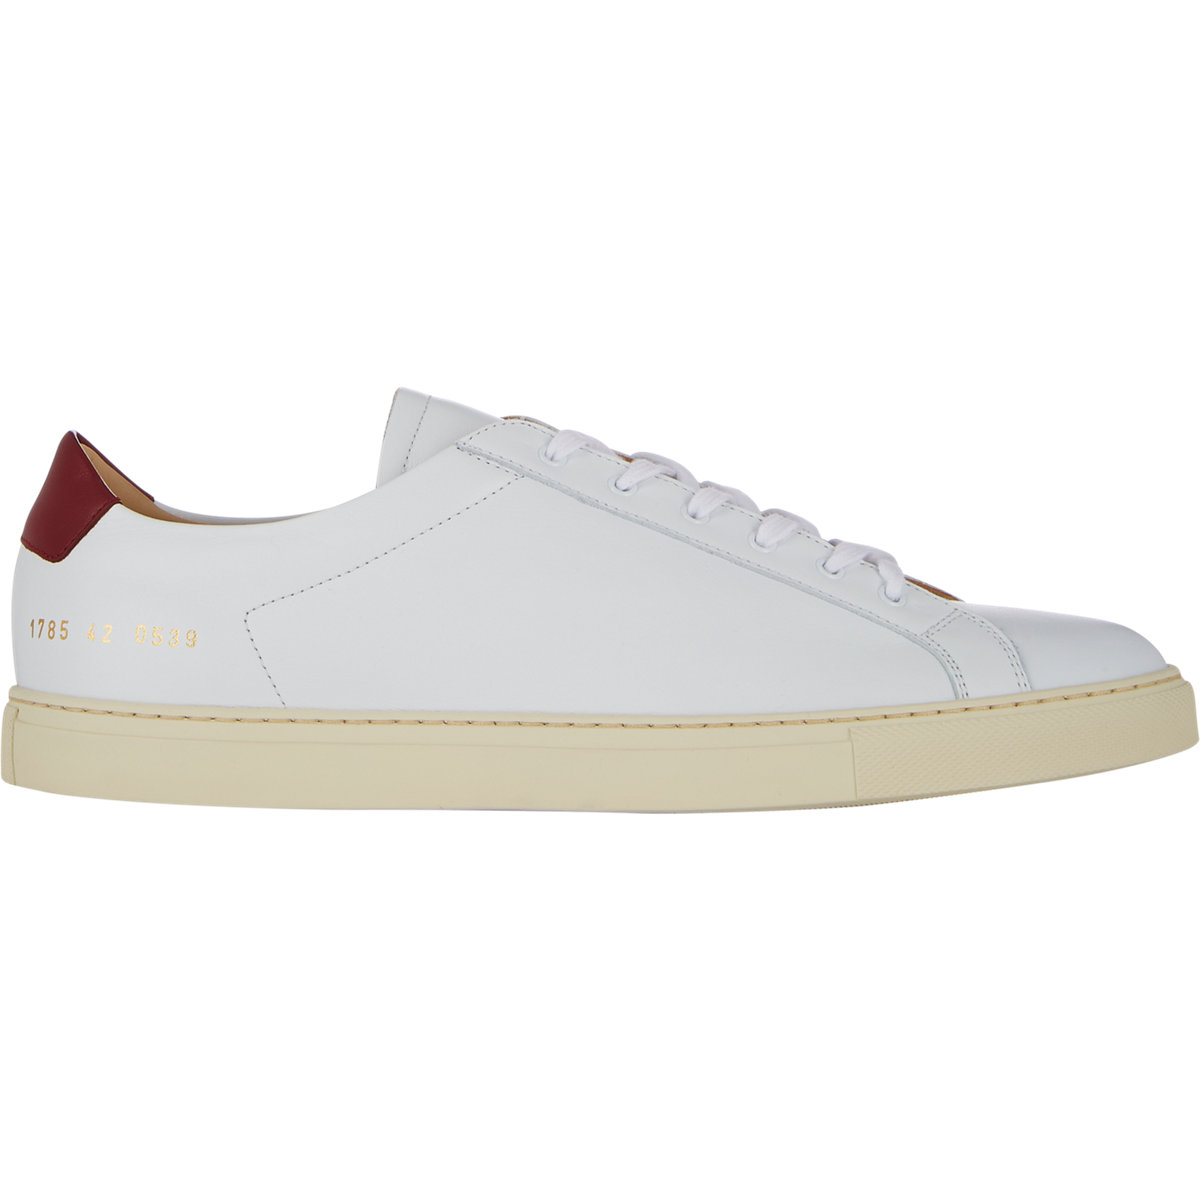 common projects achilles retro sneakers in white for men lyst. Black Bedroom Furniture Sets. Home Design Ideas